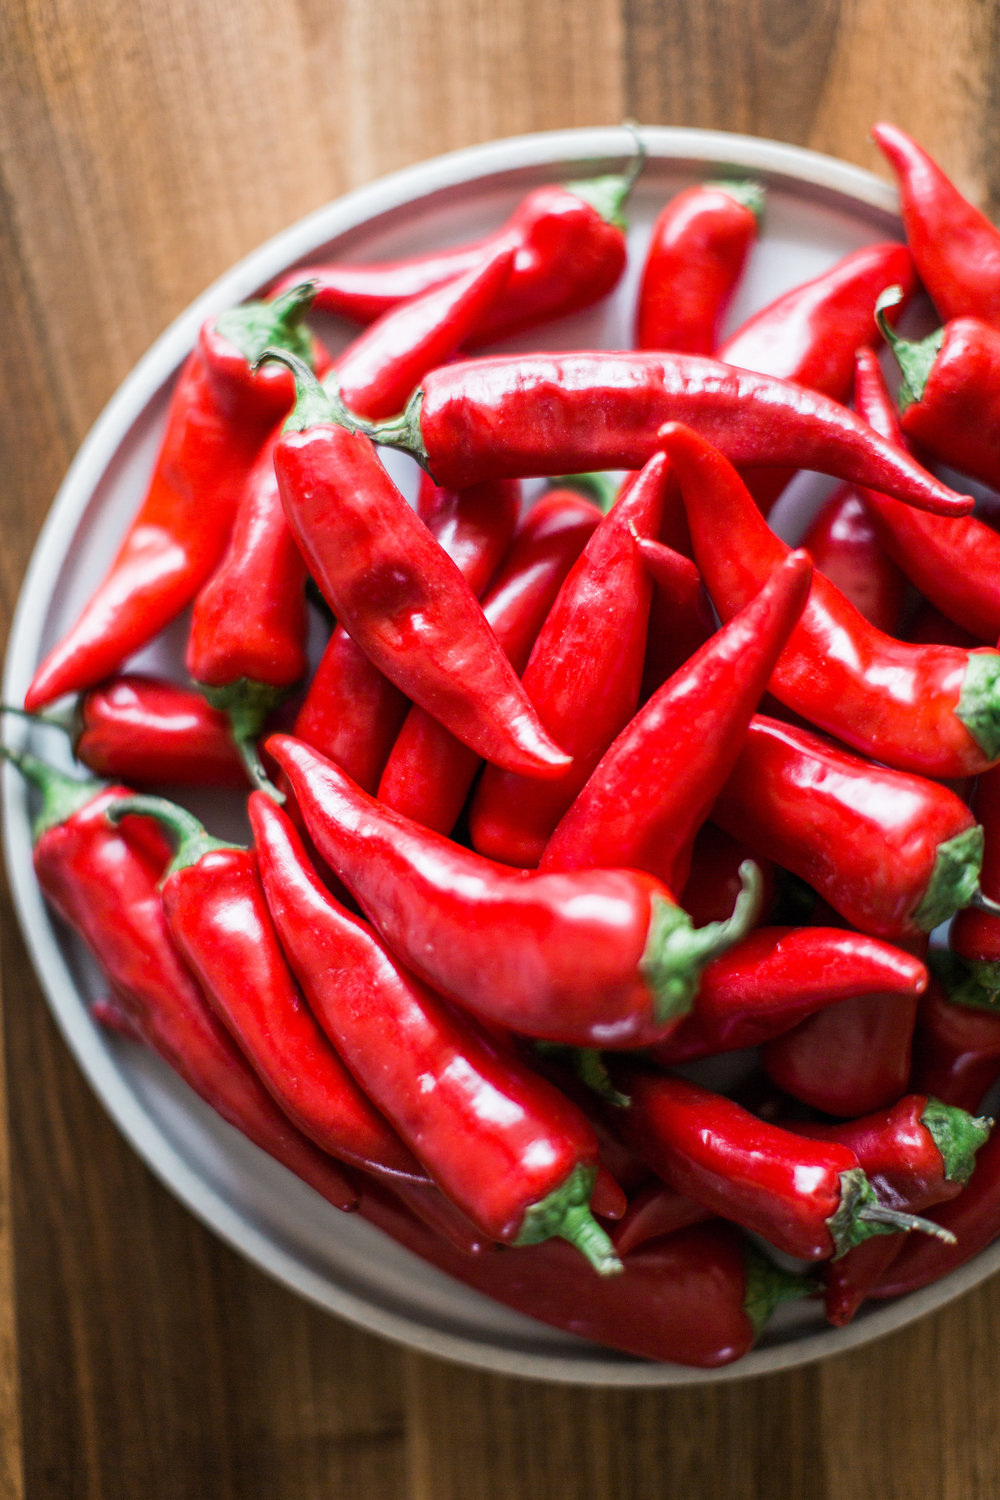 fresh red chilis.